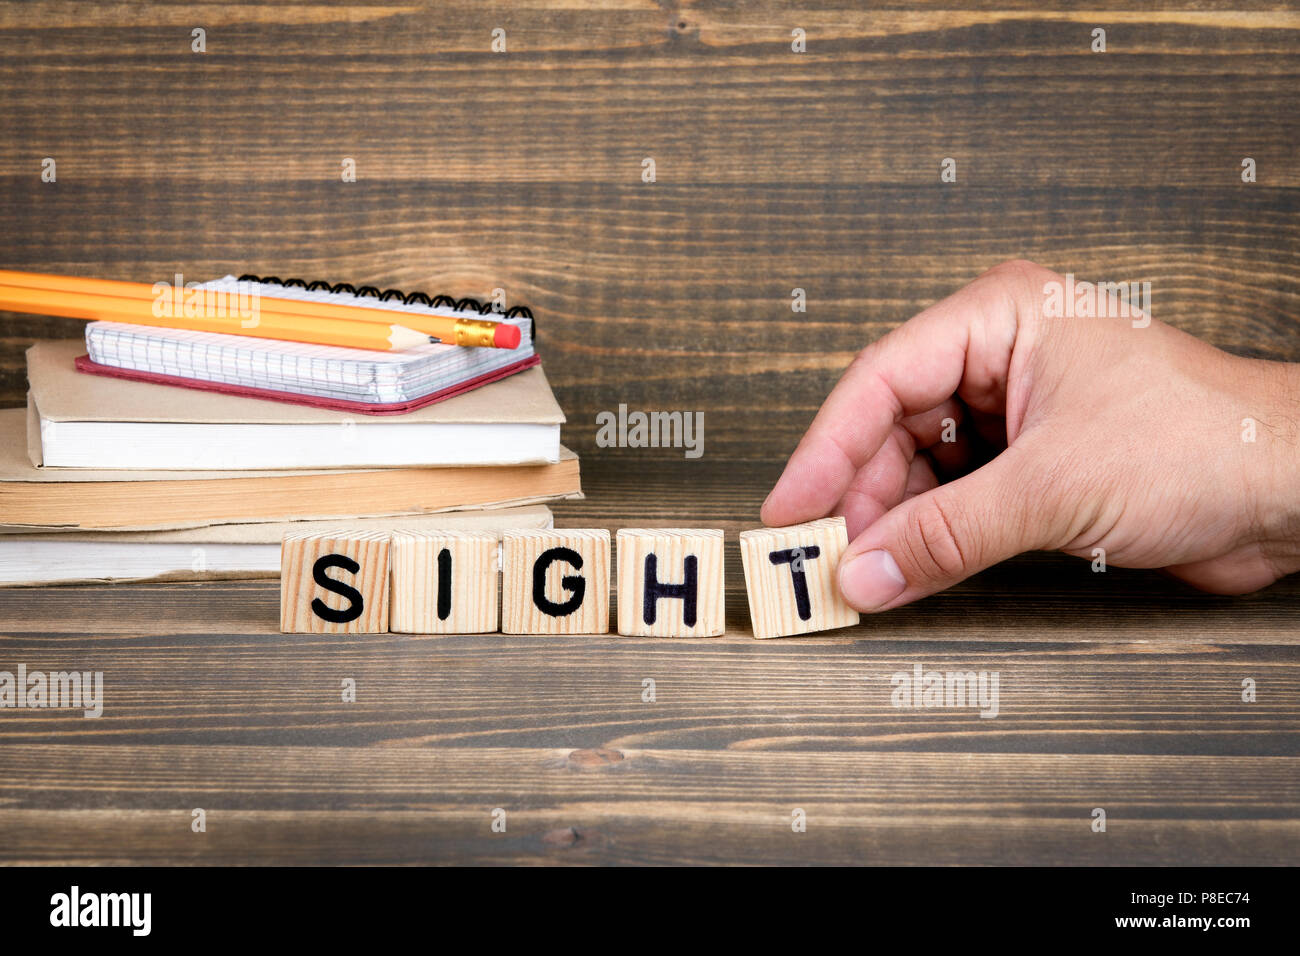 Sight. Wooden letters on the office desk - Stock Image